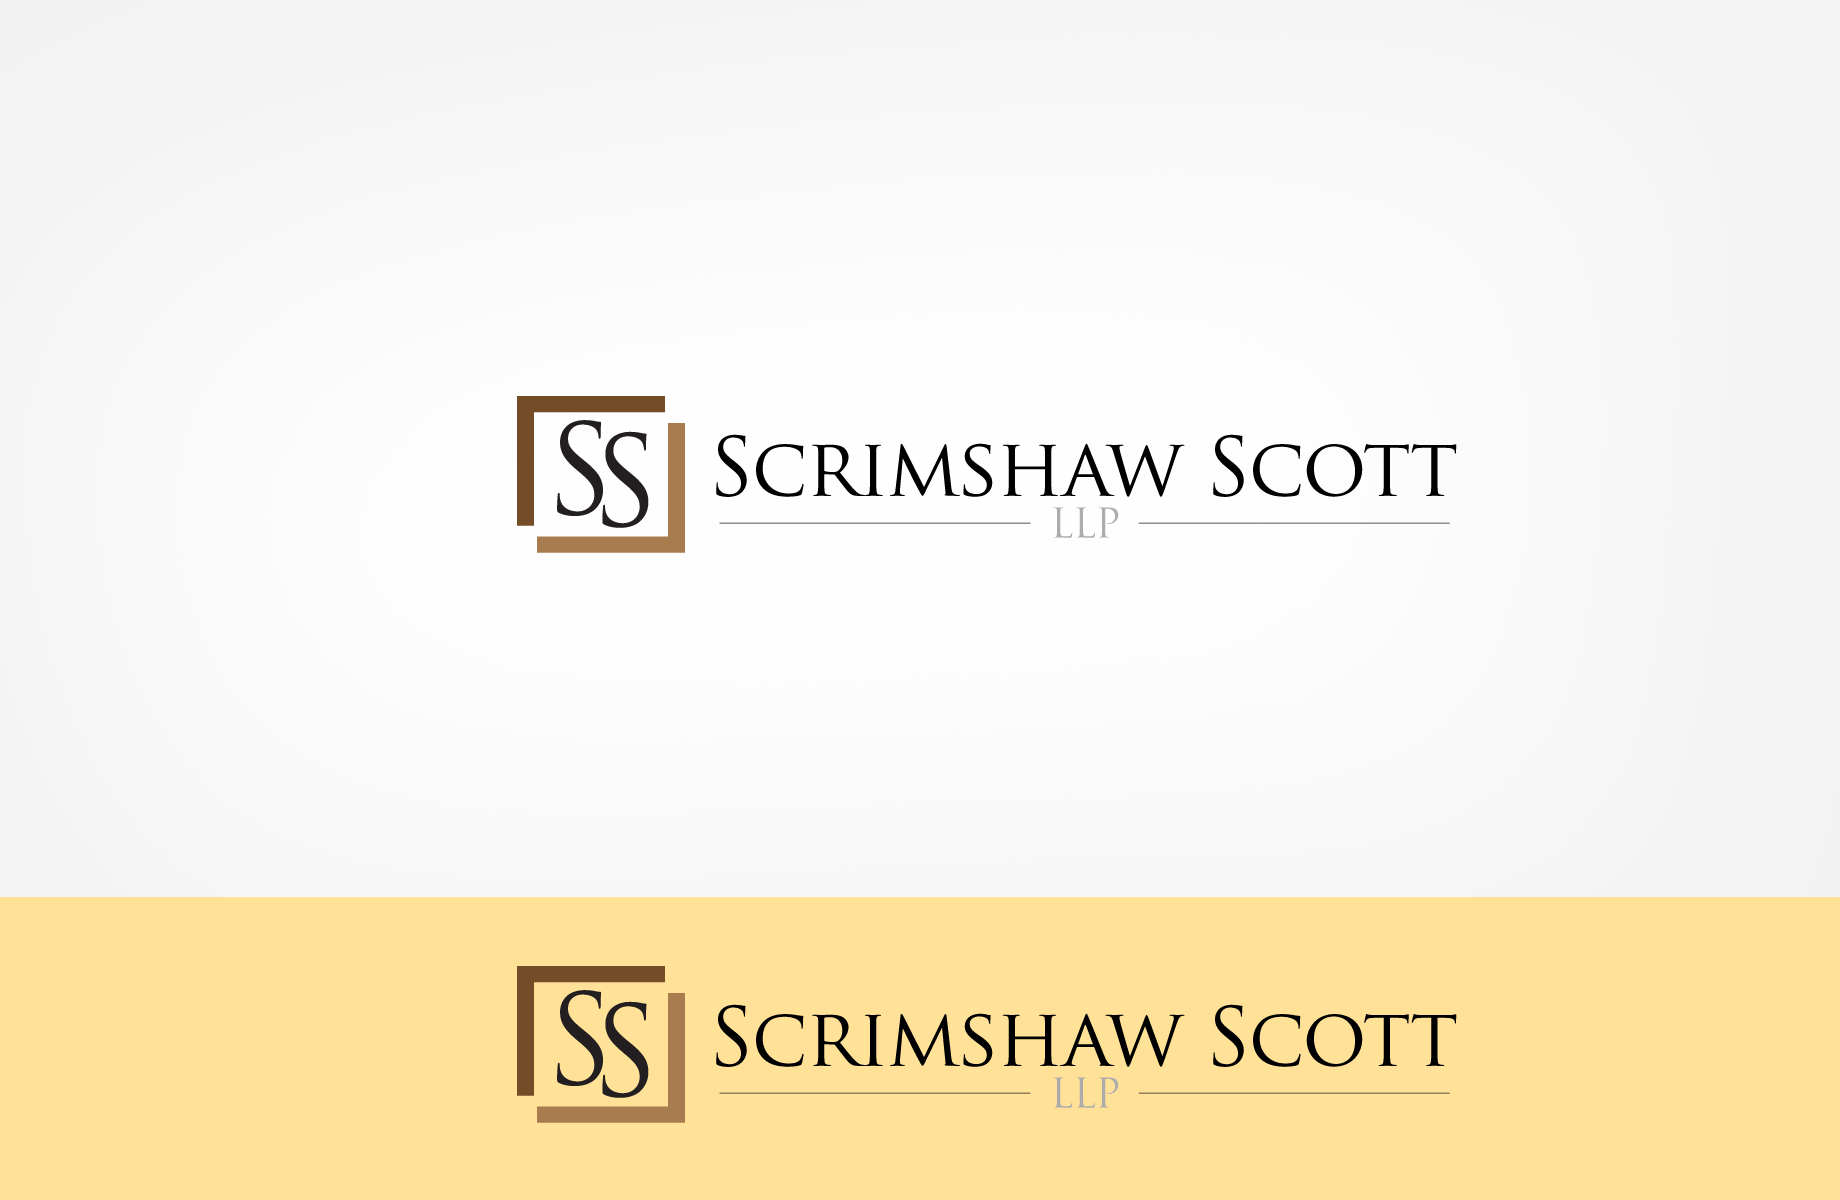 Logo Design by Jan Chua - Entry No. 80 in the Logo Design Contest Creative Logo Design for Scrimshaw Scott LLP.